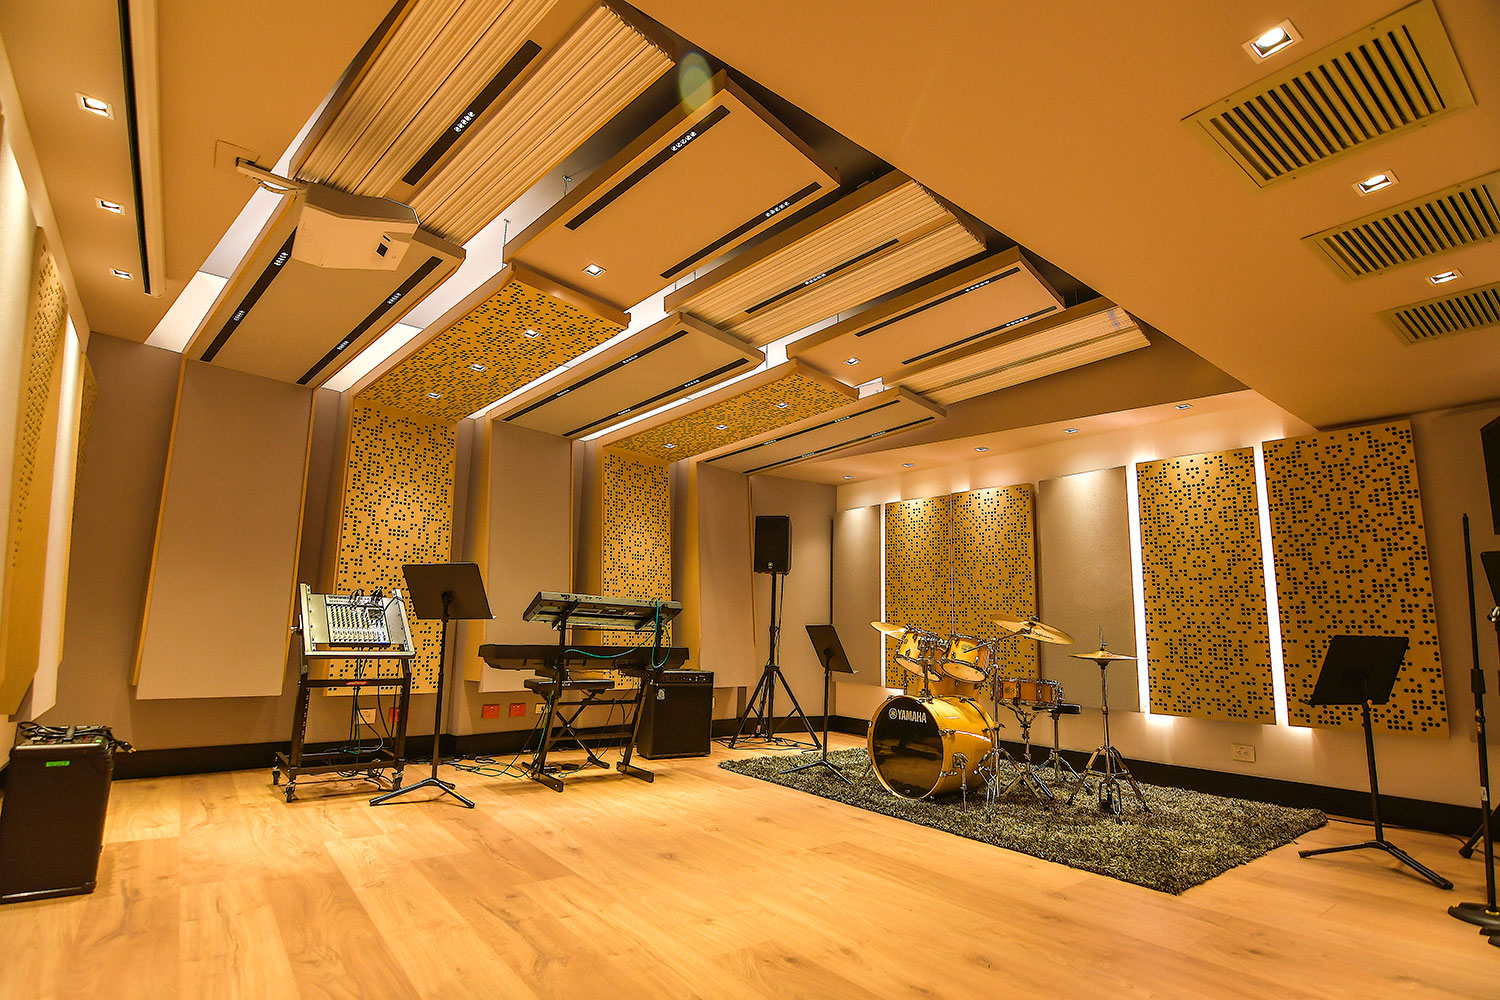 Universidad ICESI new world-class recording studio facility designed by WSDG. Ensemble Room. Mejor sala de ensayo colombia.